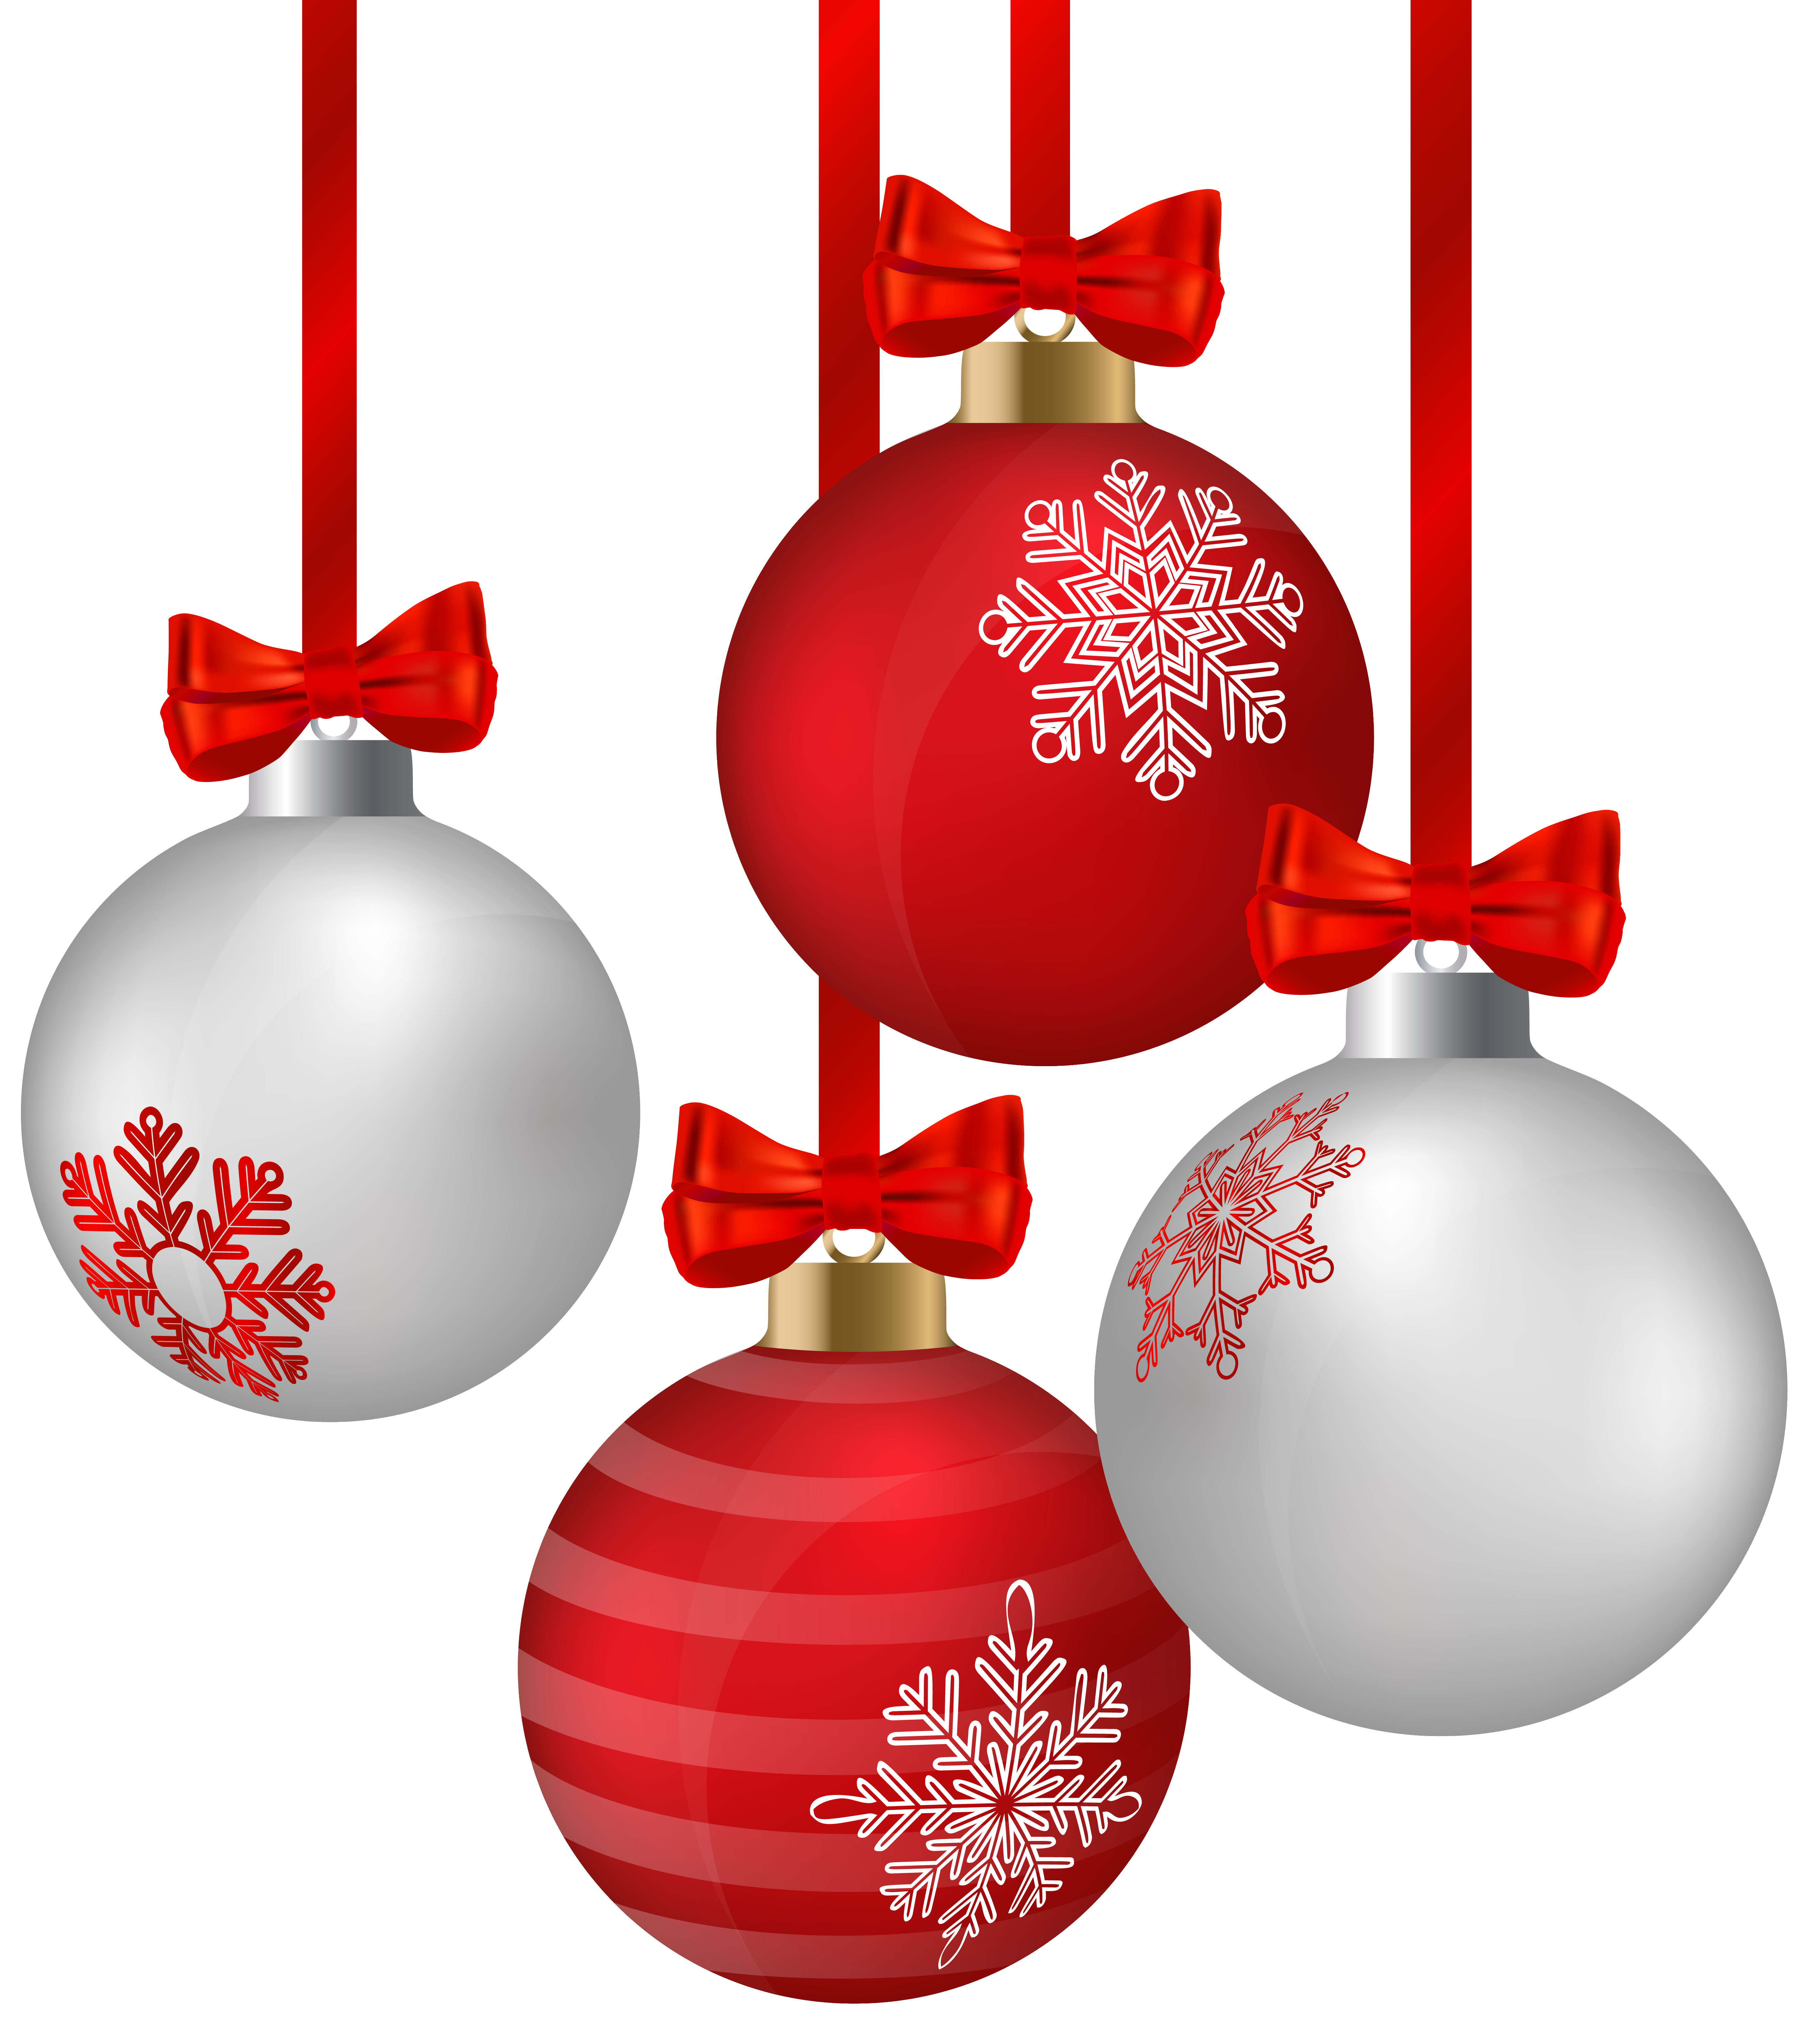 Christmas Ornaments Clip Art Png Transparent Background Free Download 46348 Freeiconspng